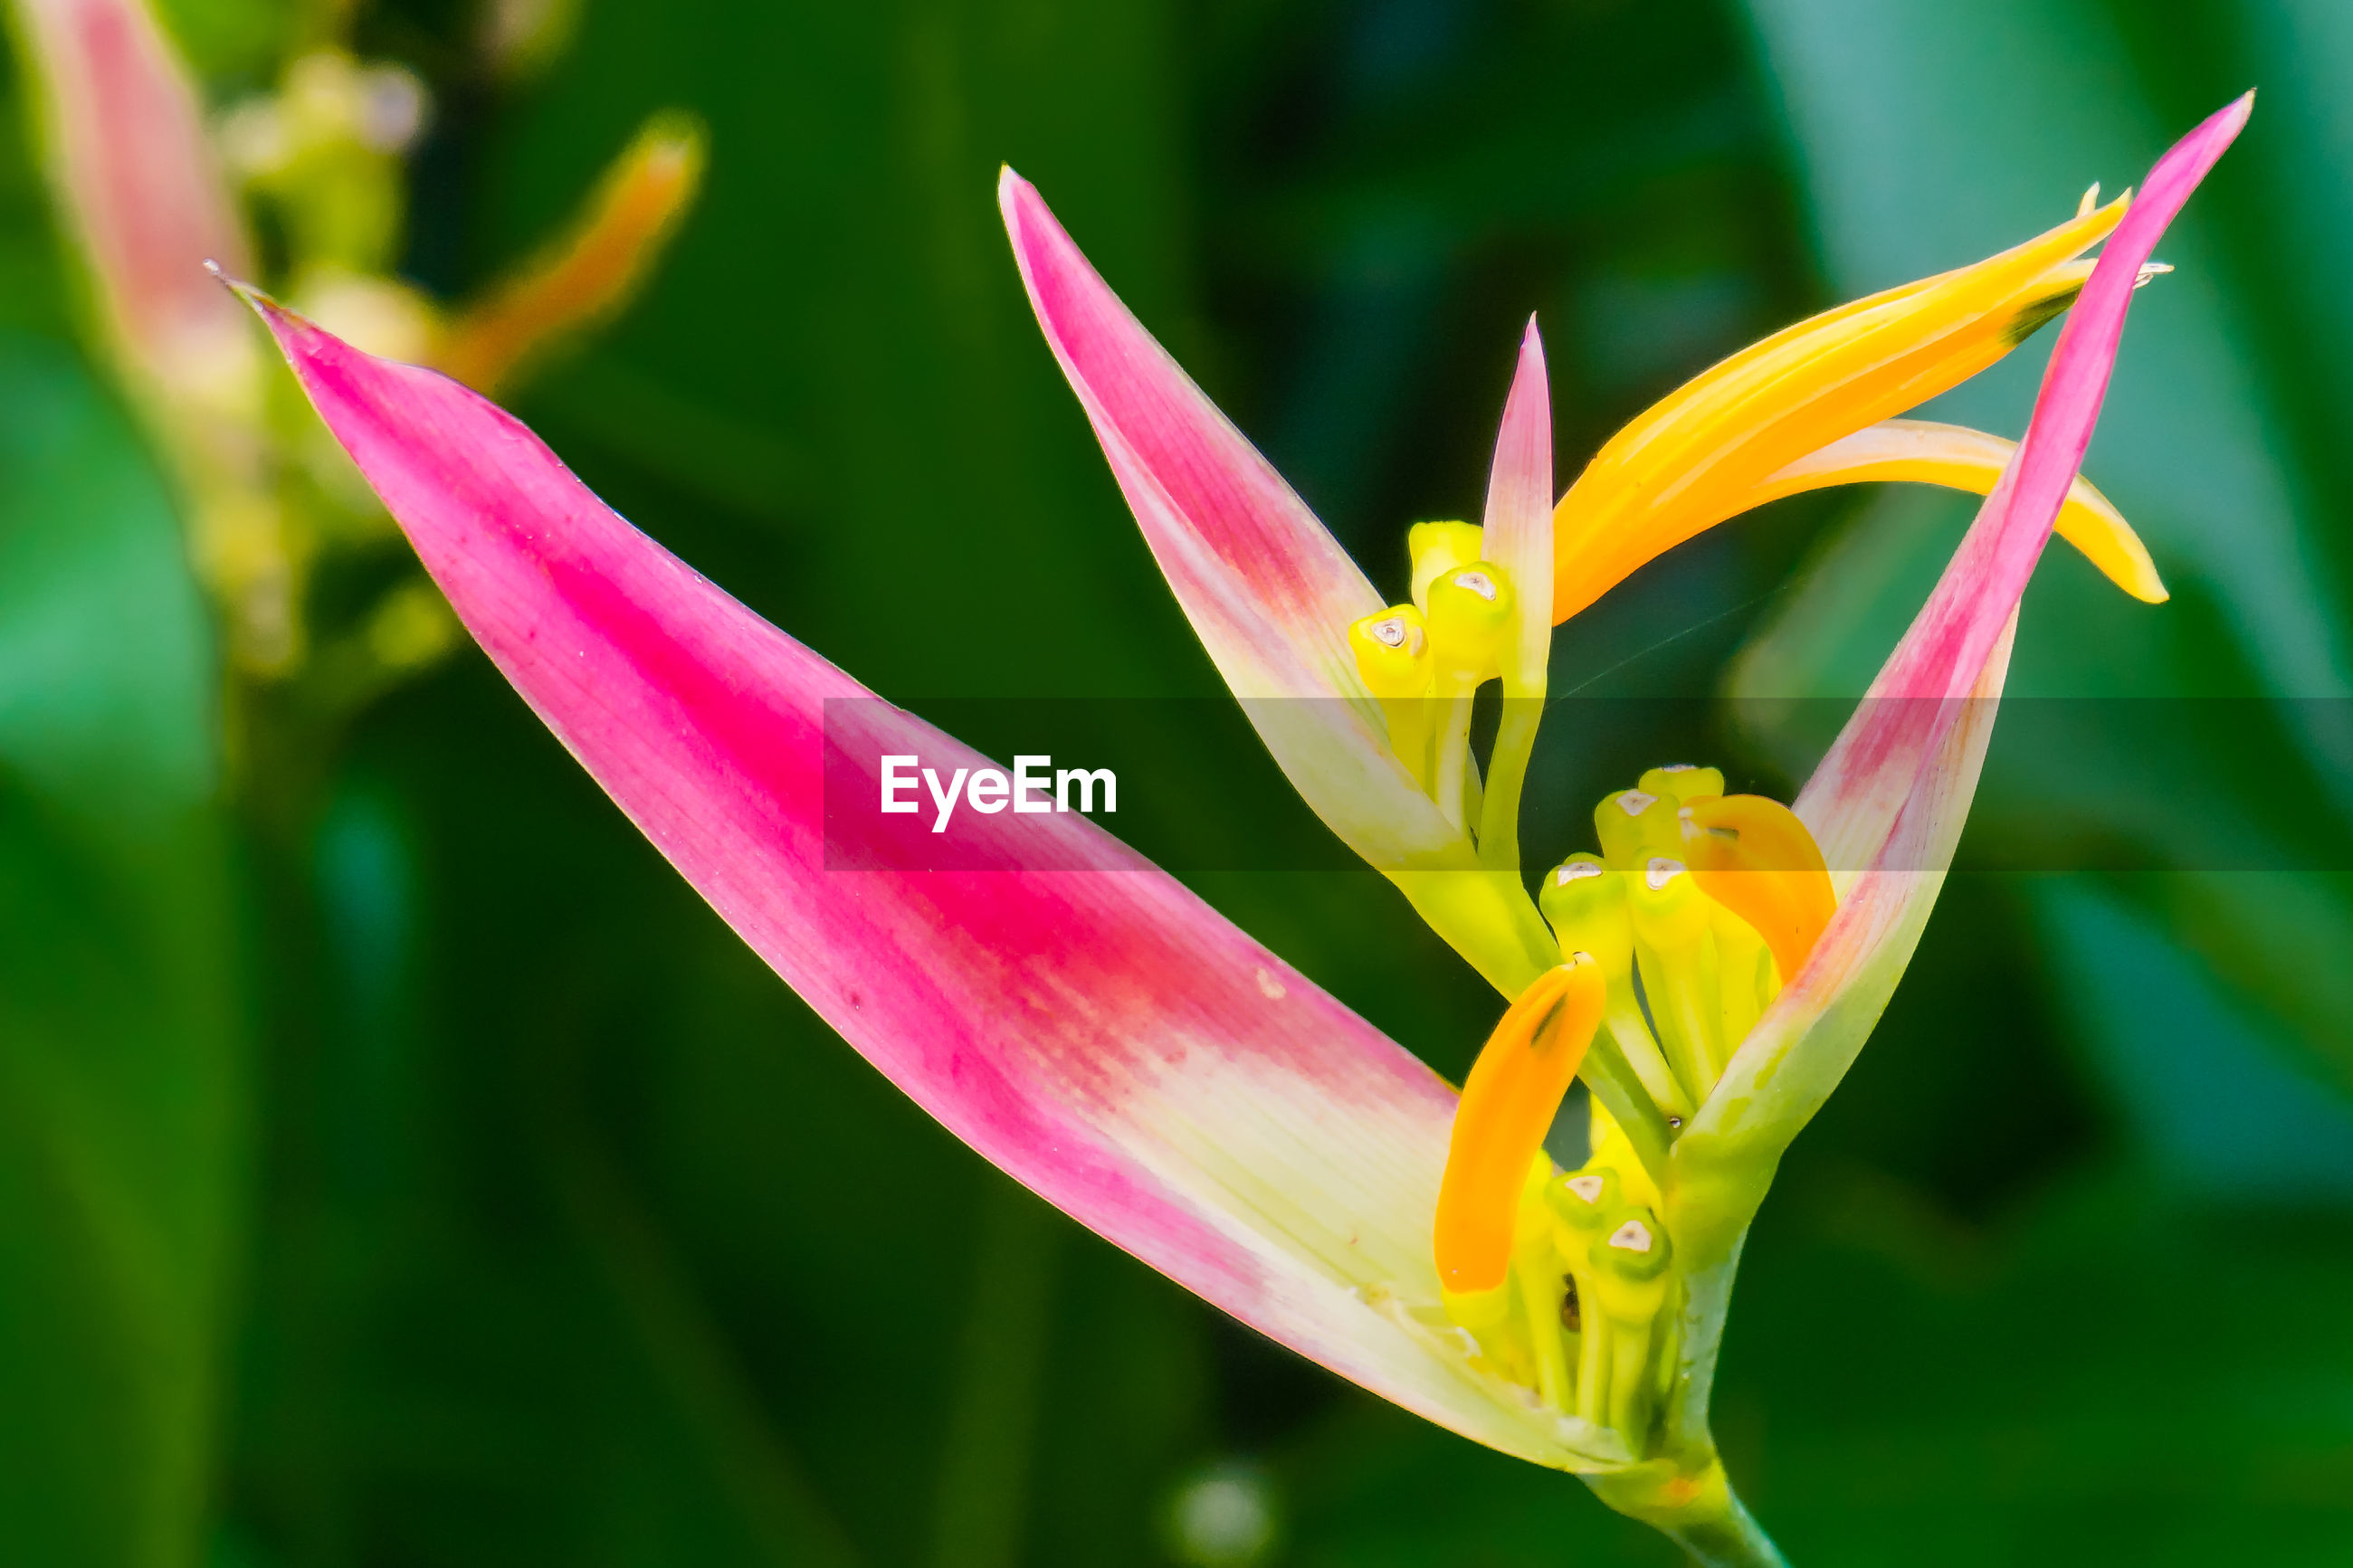 CLOSE-UP OF YELLOW LILY BLOOMING IN PLANT